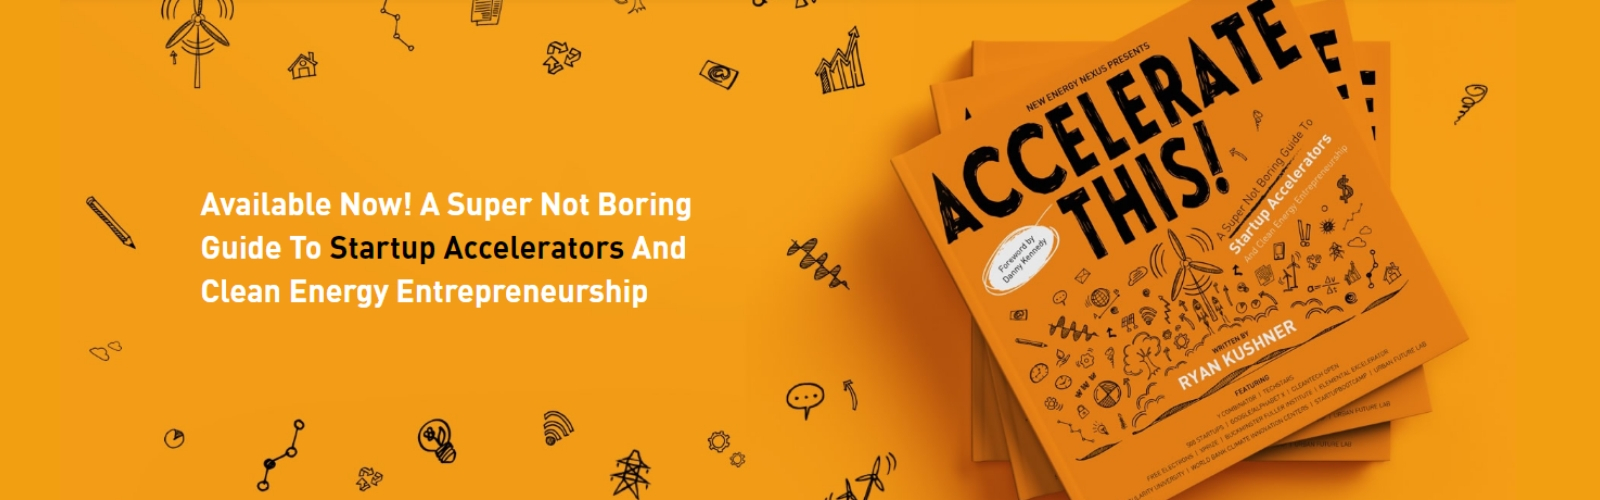 Available Now! A Super Not Boring Guide To Startup Accelerators And Clean Energy Entrepreneurship